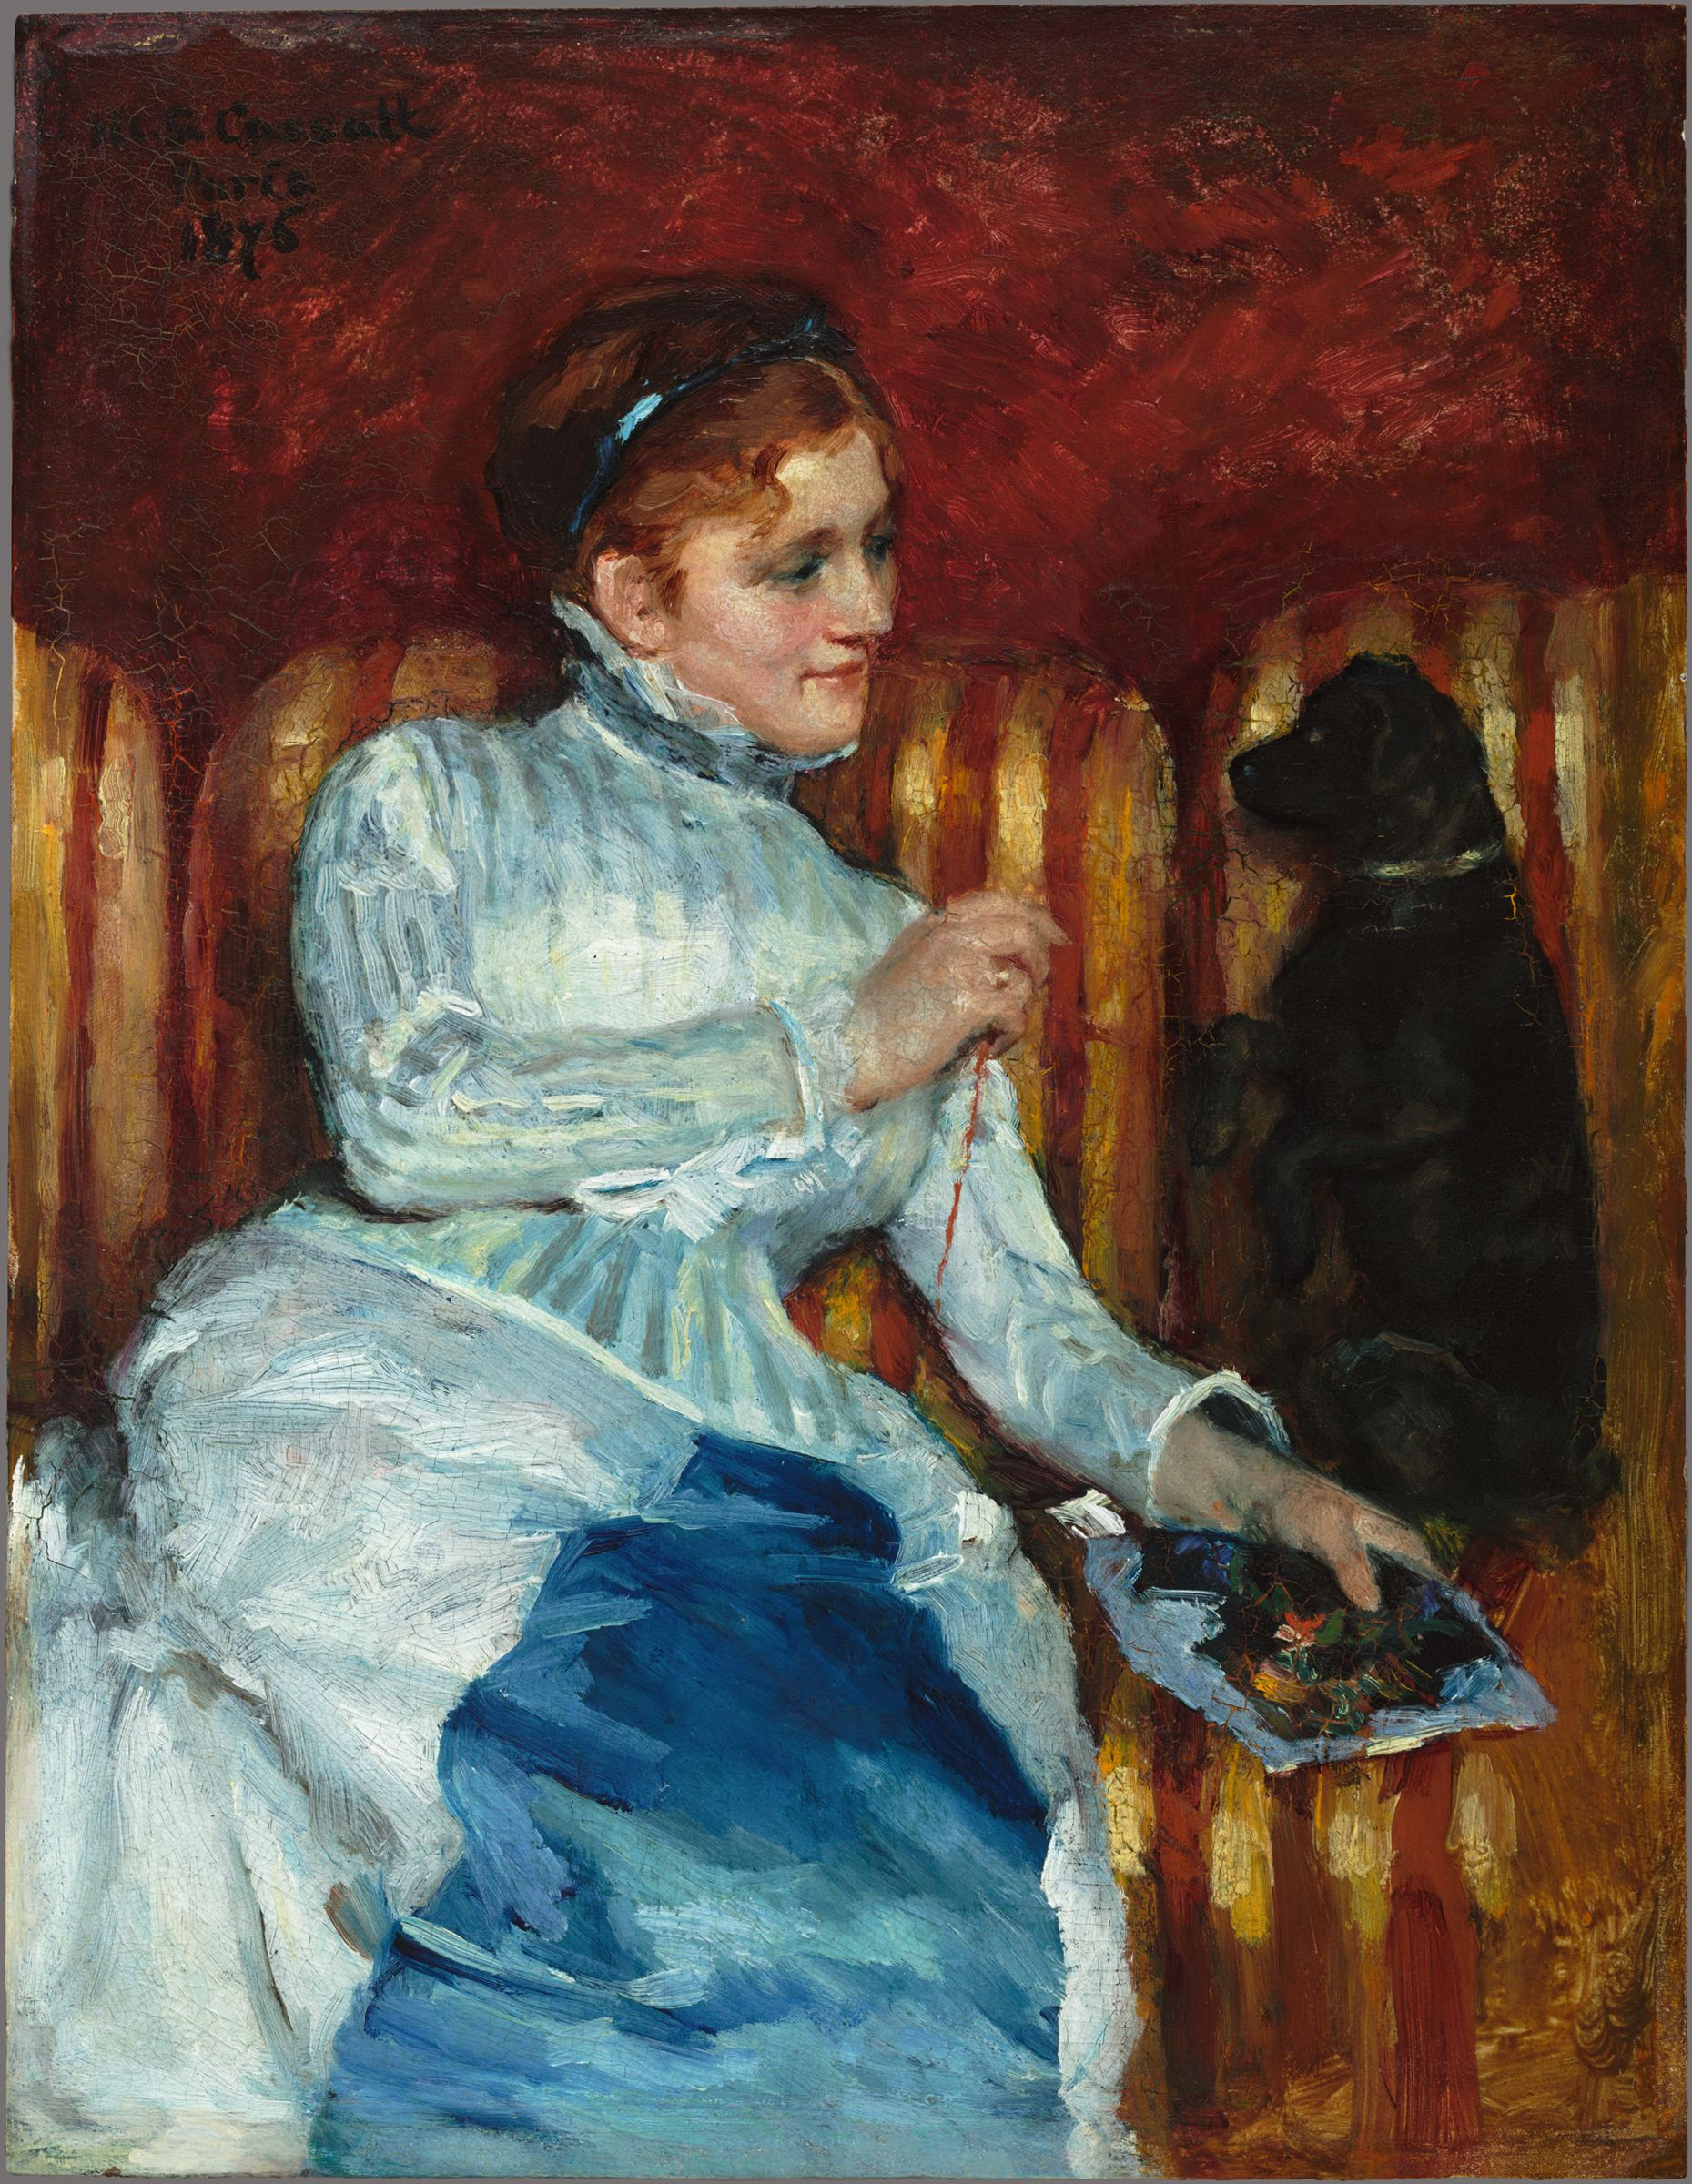 Woman On A Striped Sofa With A Dog